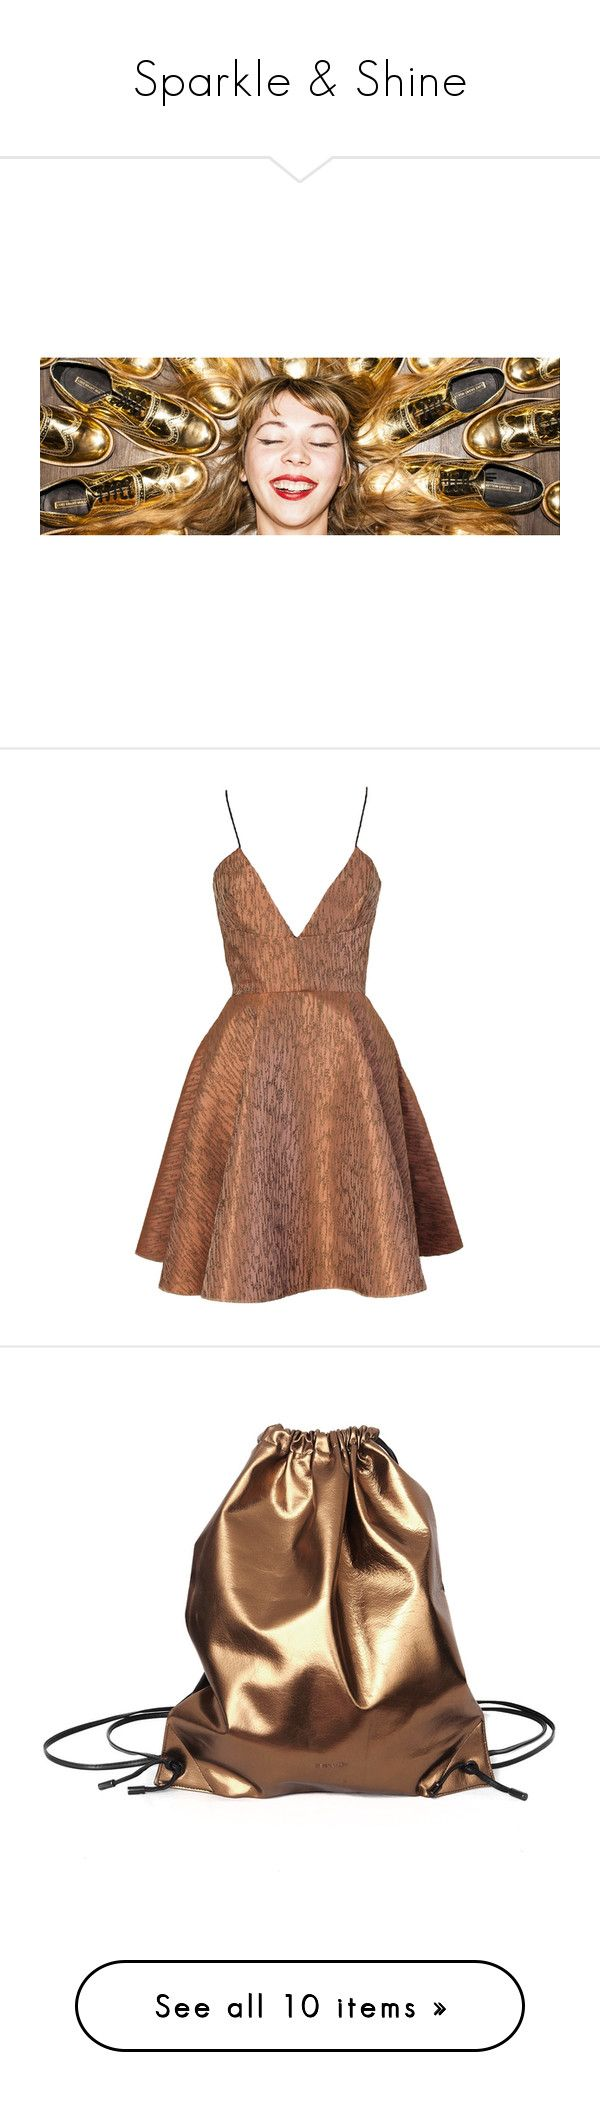 """Sparkle & Shine"" by wolfandbadger ❤ liked on Polyvore featuring dresses, vestidos, short dresses, cocktail dress, brown dress, stripe dress, bronze cocktail dress, striped cocktail dress, striped mini dress and bags"